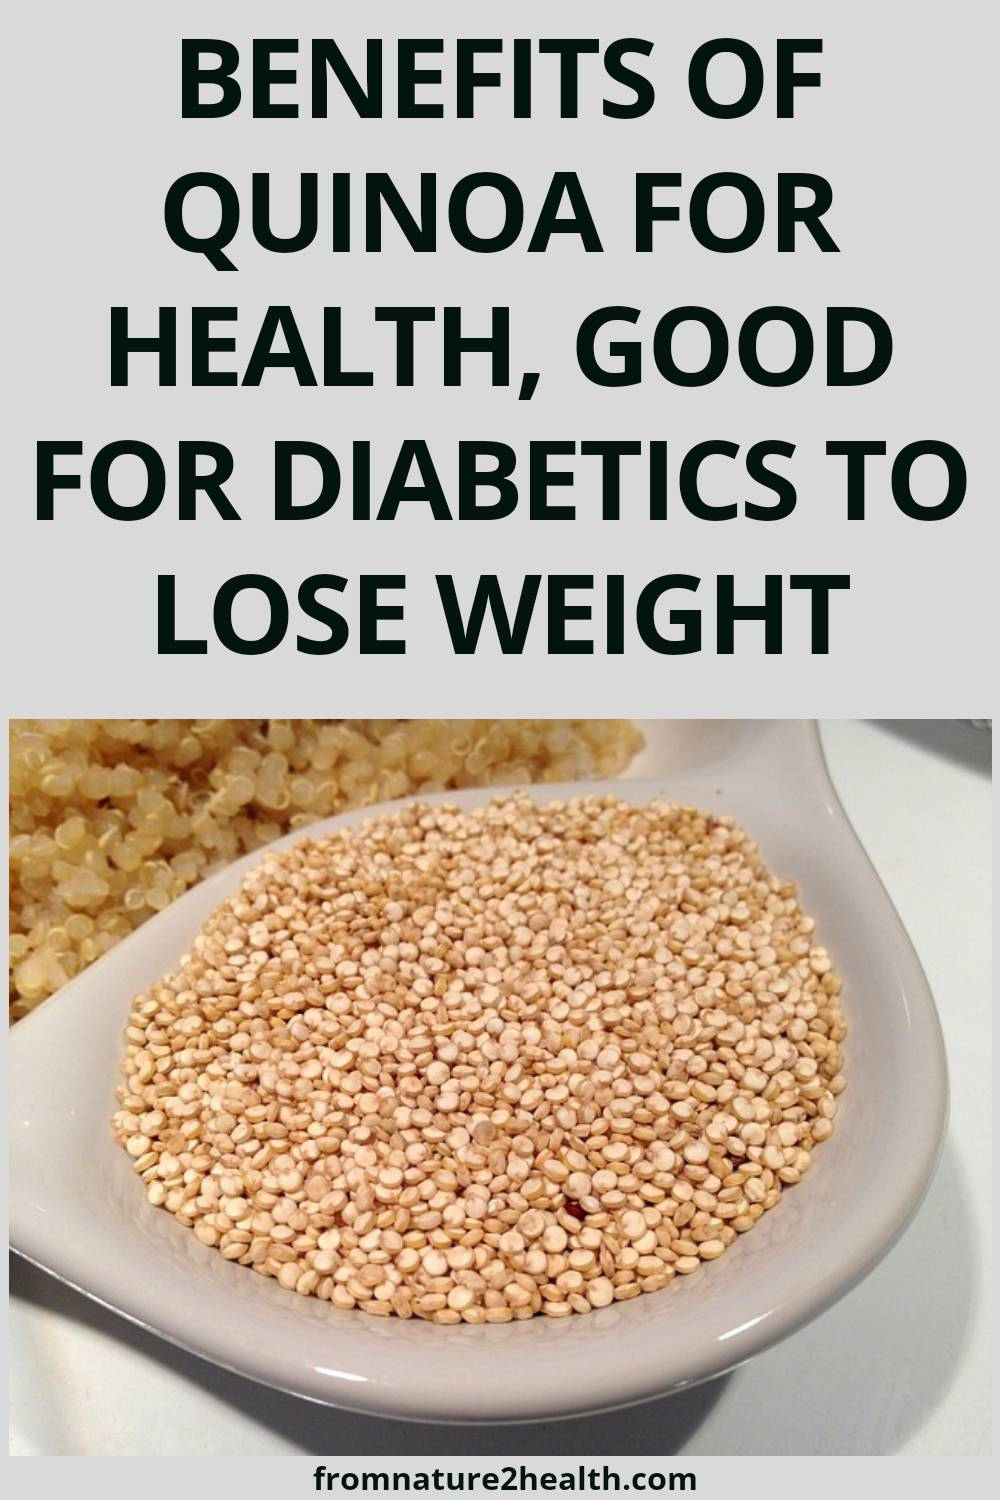 Benefits of Quinoa for Health, Good for Diabetics to Lose Weight